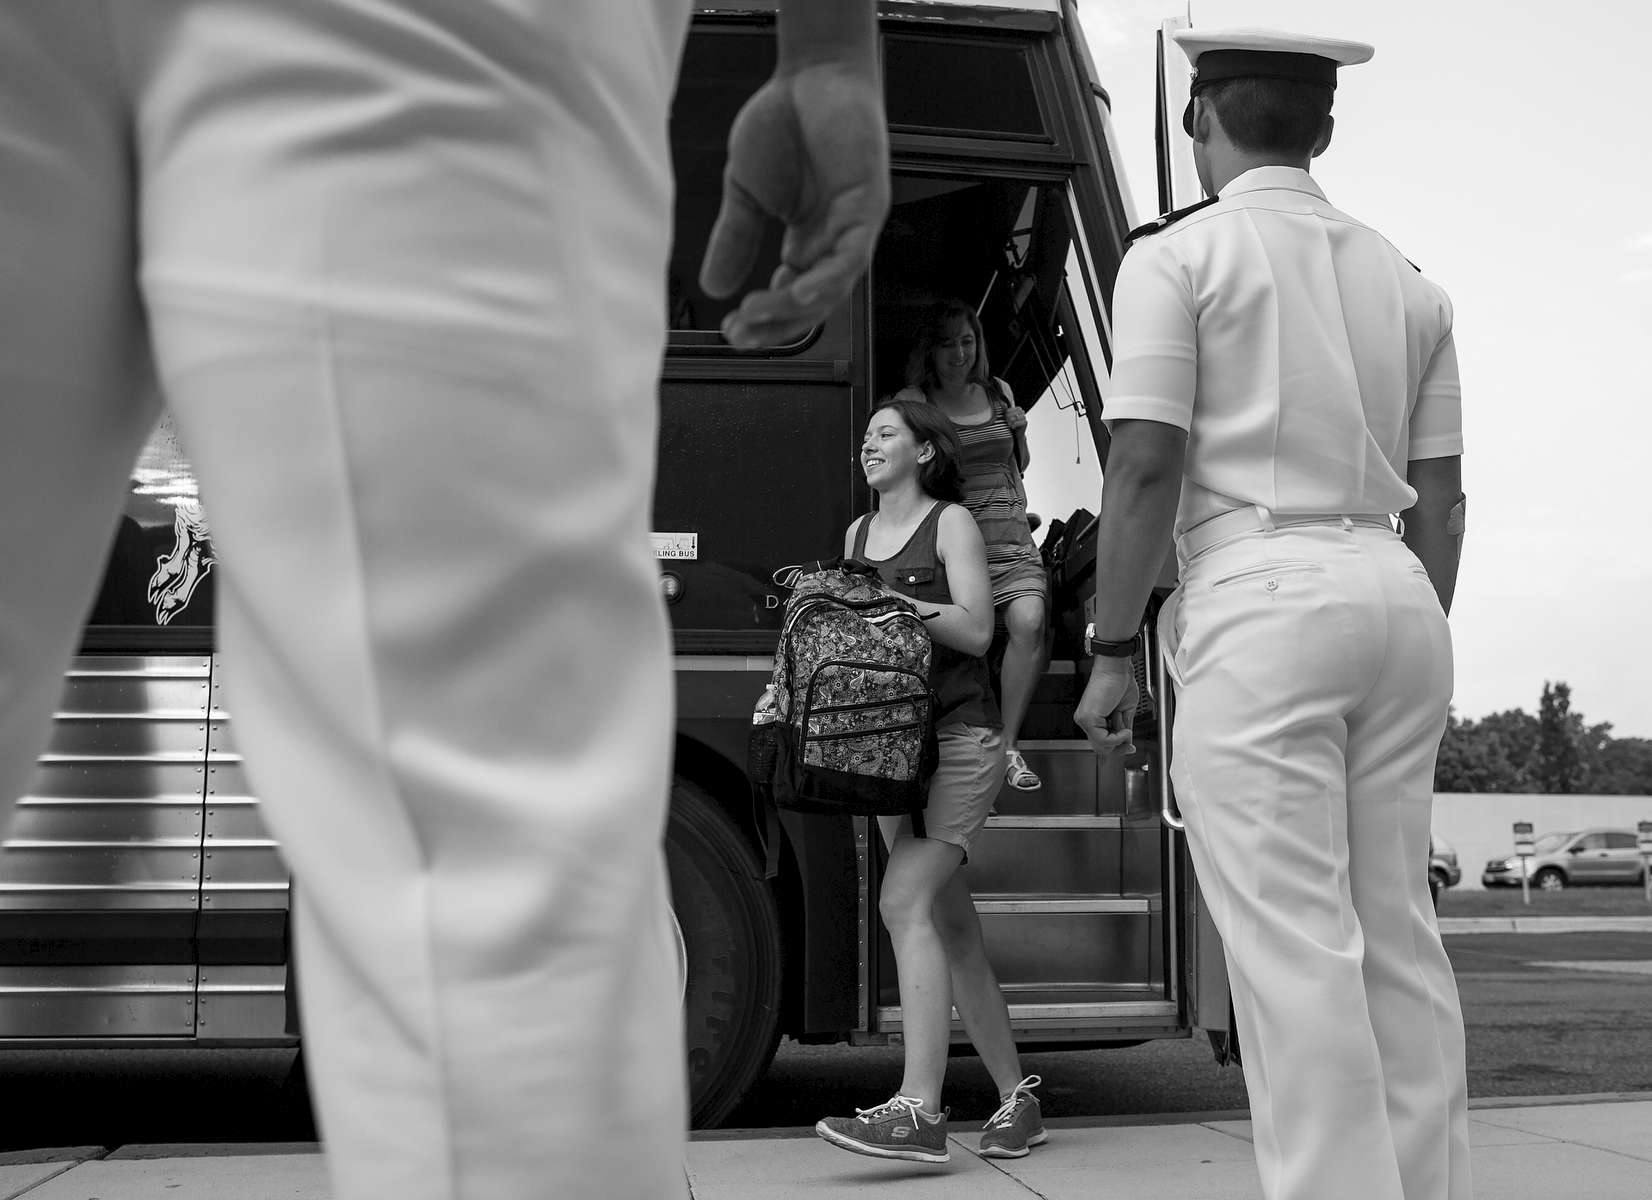 Student Photographer of the Year: Runner UpAl Drago, Elon University A plebe heads off the bus to begin Induction Day at the U.S. Naval Academy, Wednesday, July 1, 2015, in Annapolis, Md. More than 1,100 young men and women reported for {quote}I-Day,{quote} where they will receive haircuts, medical examinations, new uniforms and instructions on how to salute before taking an oath of office to become members of academy's newest class.